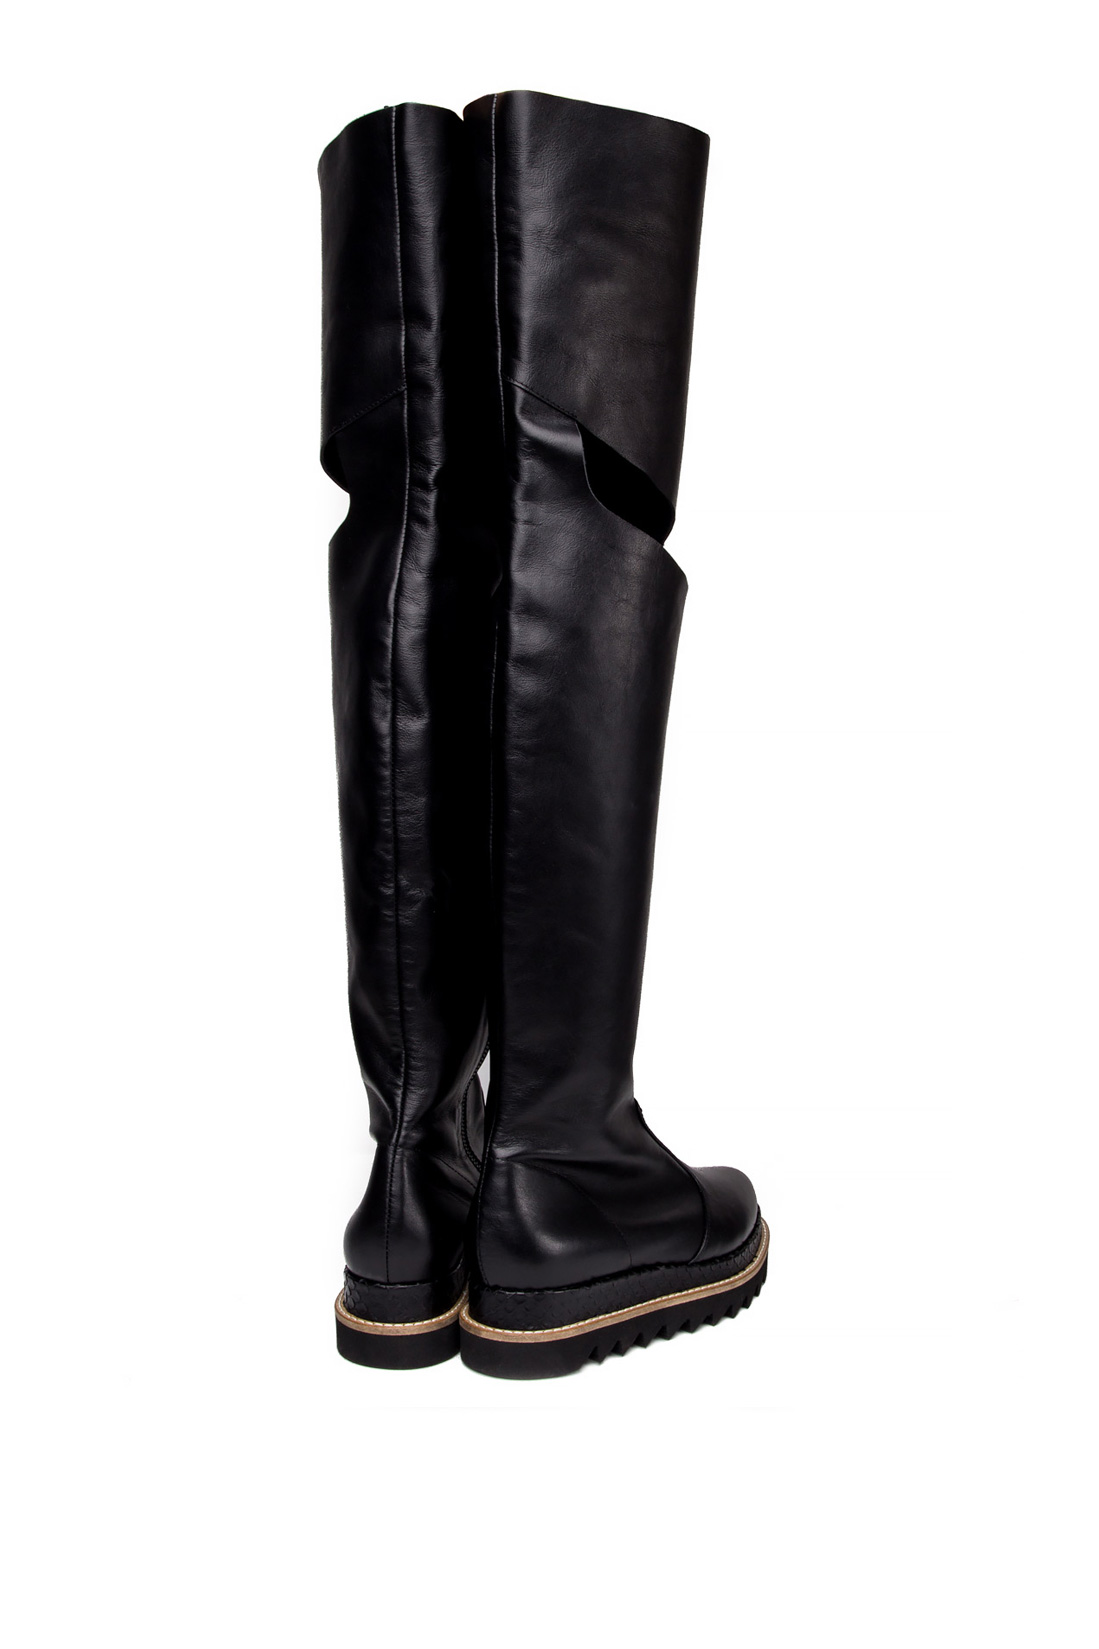 Cutout leather over-the-knee boots Mihaela Glavan  image 2